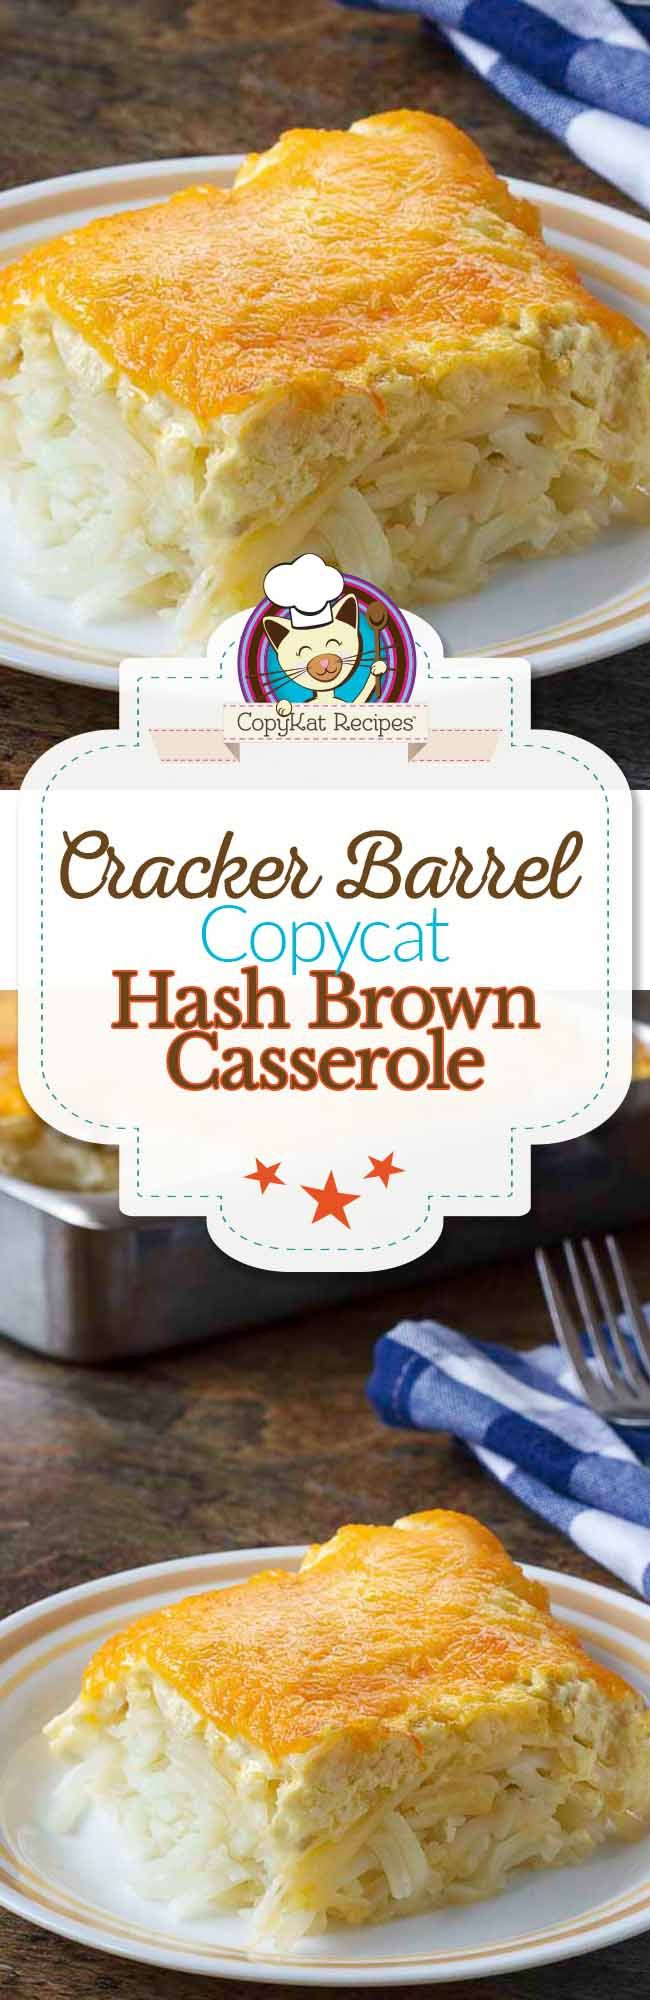 Make your own copycat recipe for Cracker Barrel  Hash Brown Casserole with this copycat recipe.